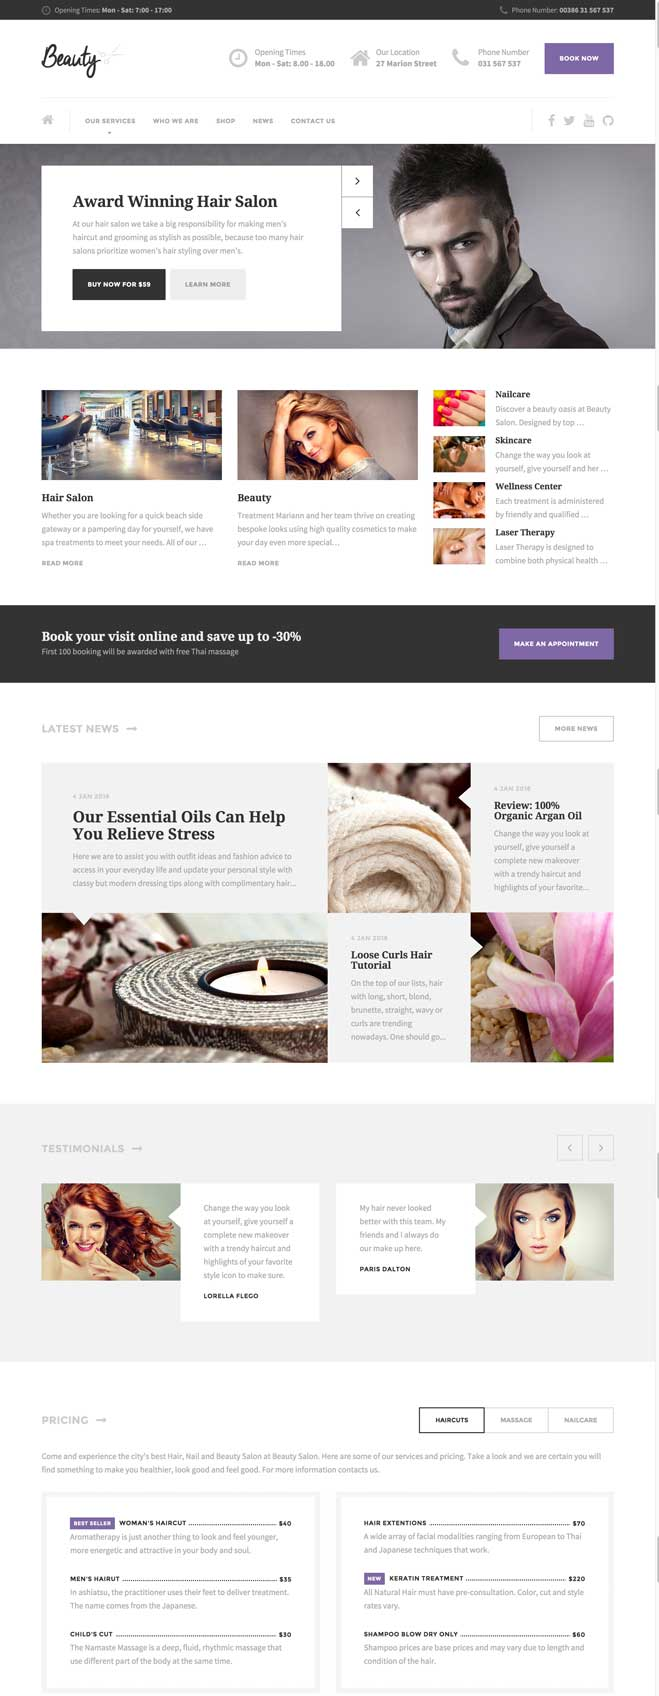 Beauty-Hair-Salon-Nail-Spa-Fashion-Wordpress-Theme